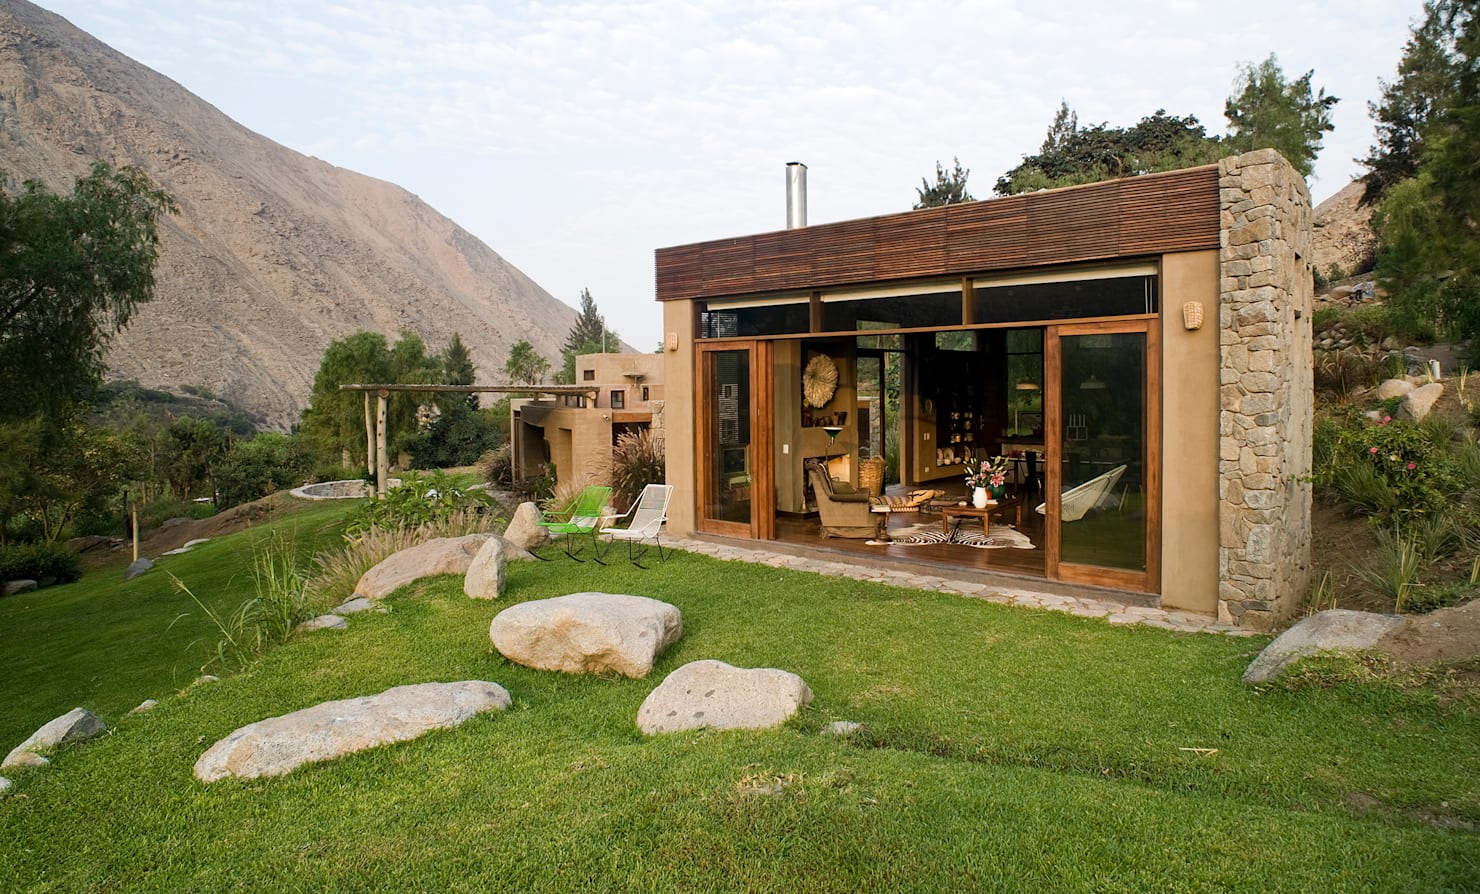 The little stone house with room for everything